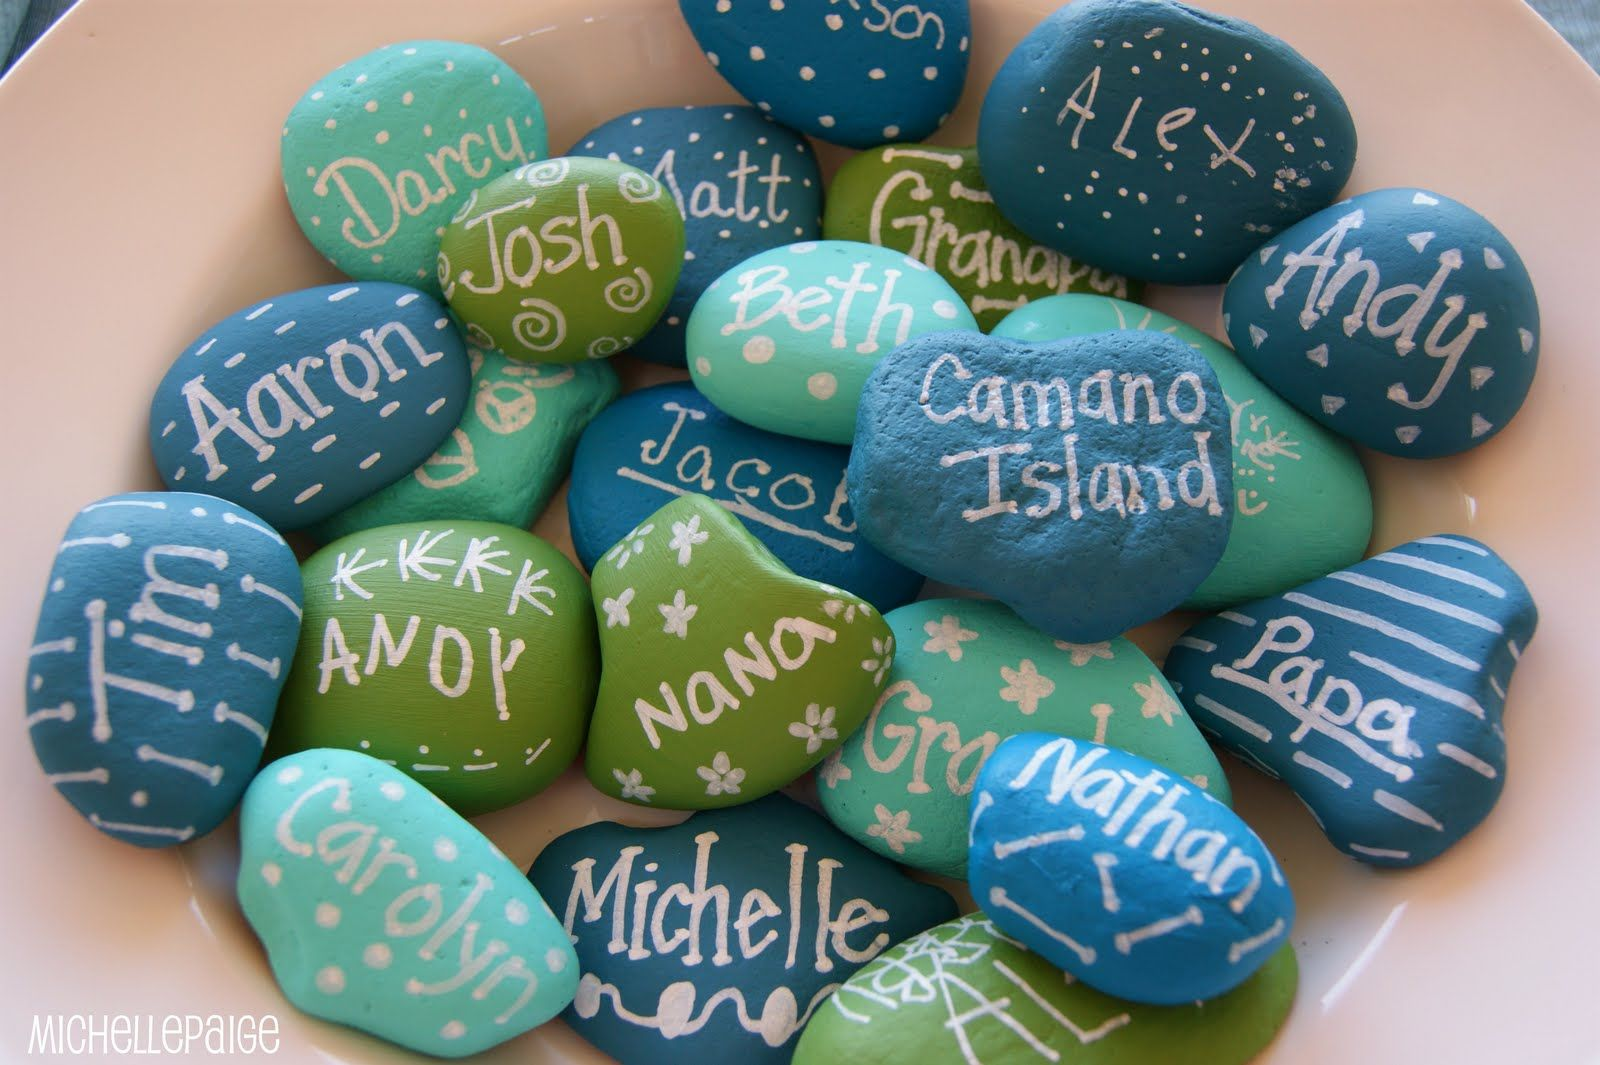 painting rocks ideas - Google Search